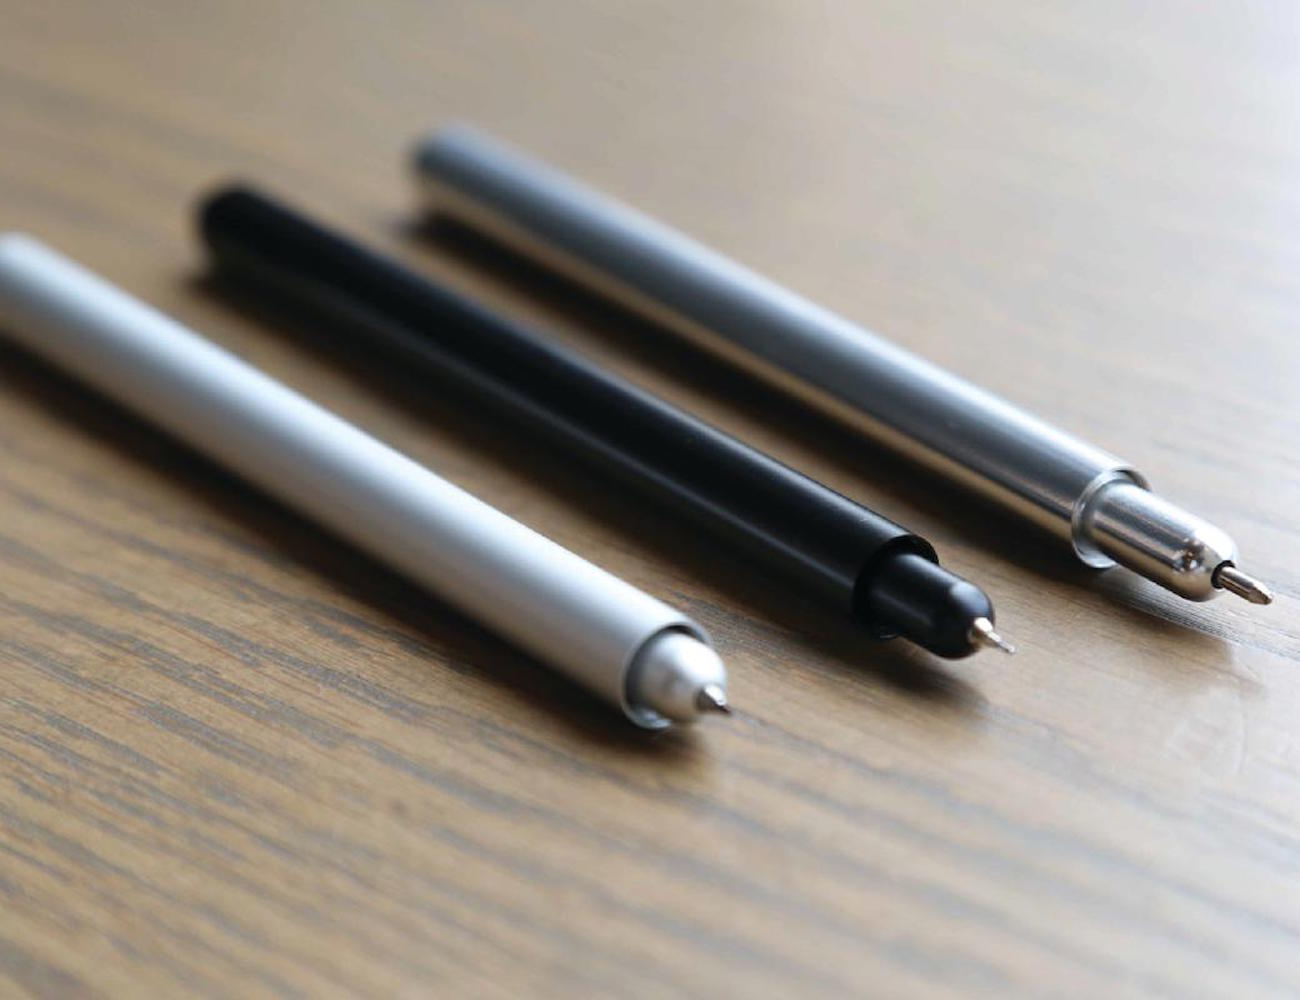 TAKUMI PURE+ An Elegant yet Smart/ Versatile Stationery